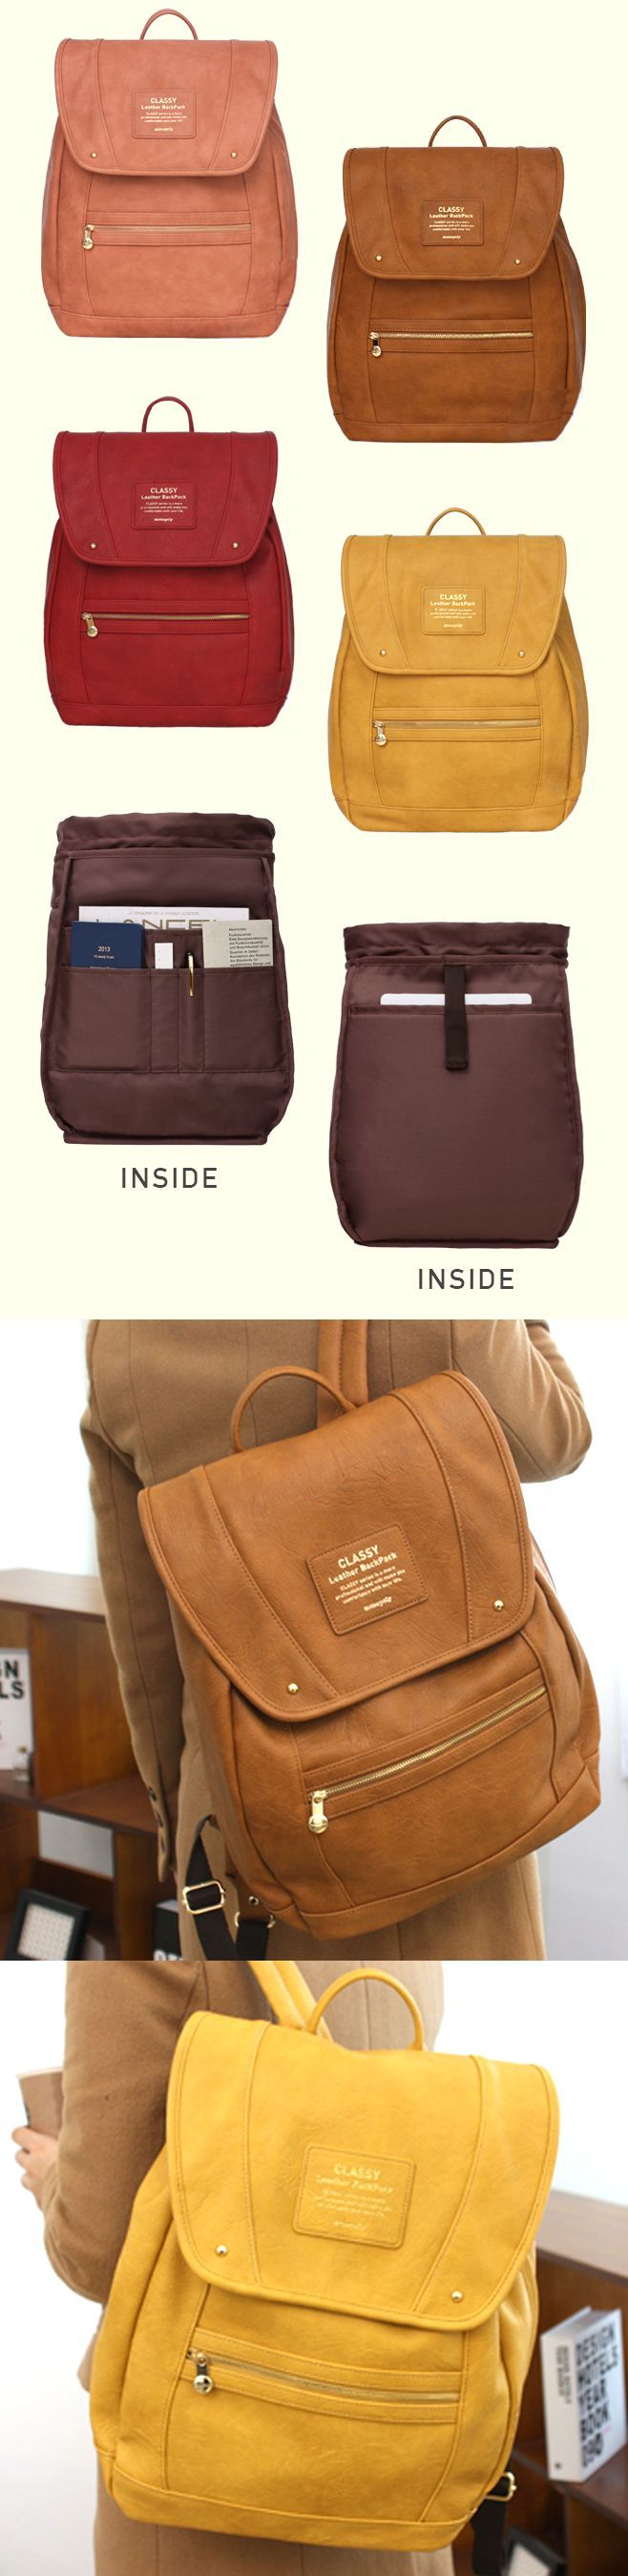 "So nice! This stylish leather backpack has a built-in cushioned 13"" laptop pocket…no need for a laptop case! The perfect backpack for class, with 8 additional pockets for organizing all your school supplies. Rain-resistant coating on the outside makes this the best bag for all weather, too! Comes in 4 different super cute colors <3"